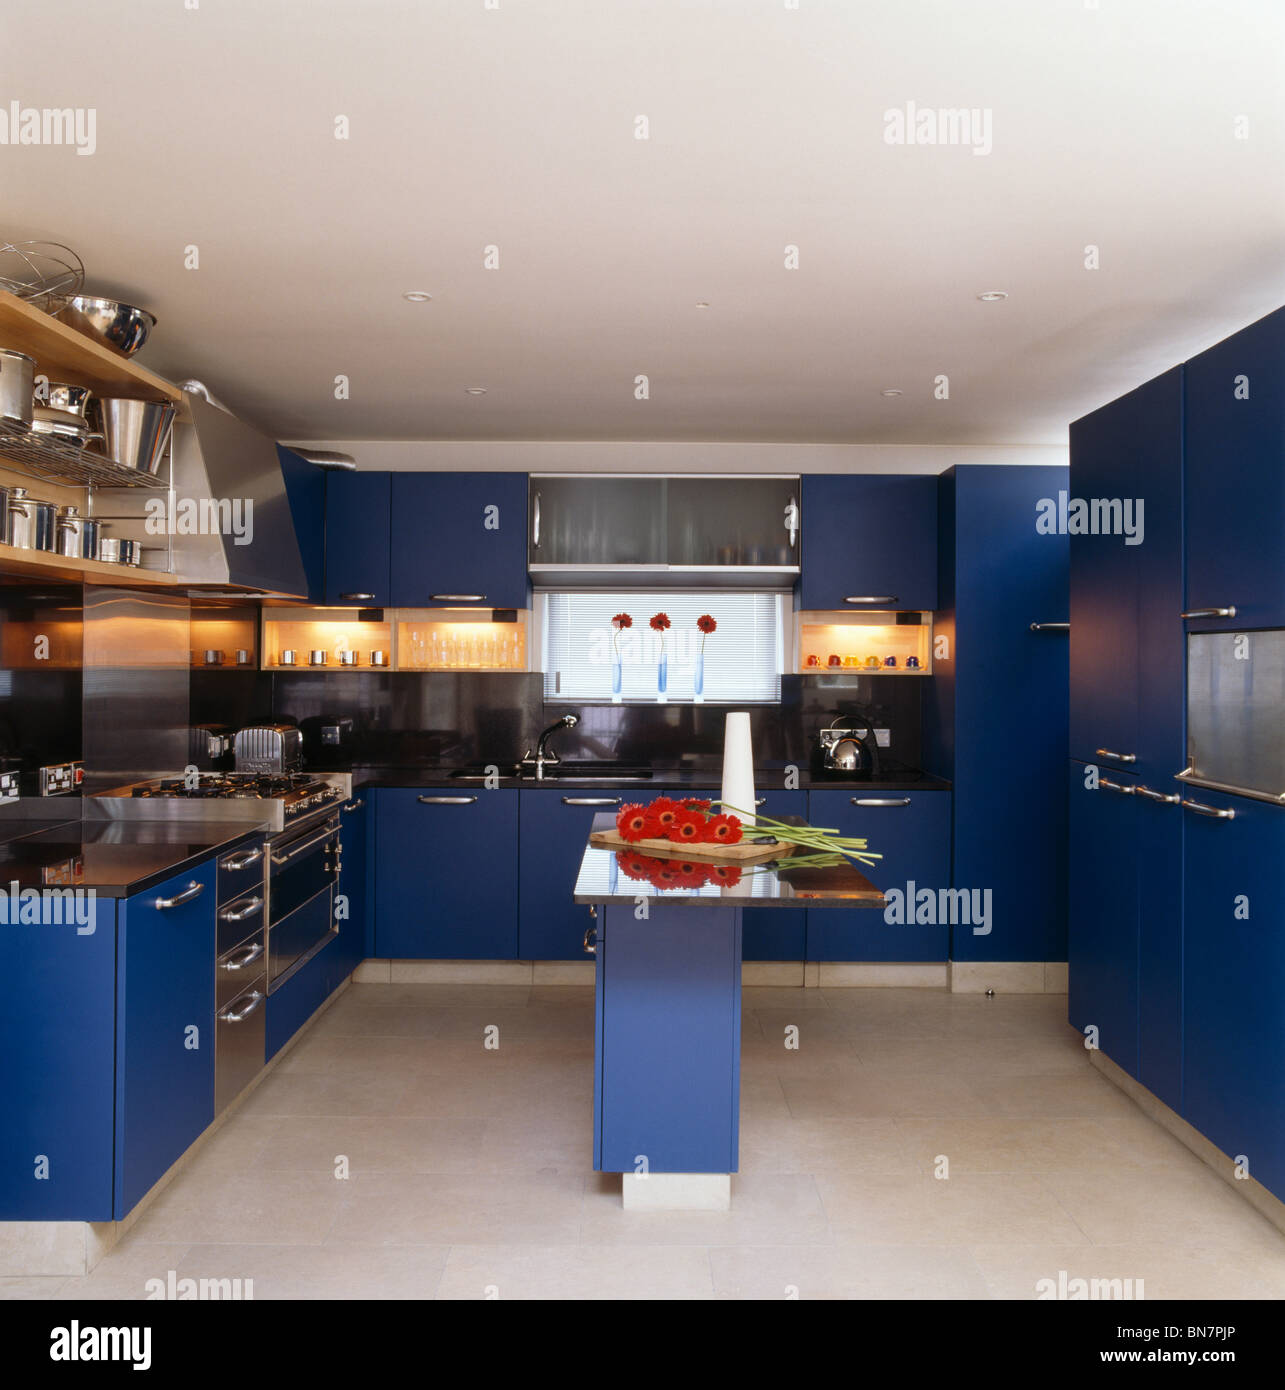 Bright blue fitted units in modern white kitchen with island unit and recessed lighting below wall cupboards - Stock Image